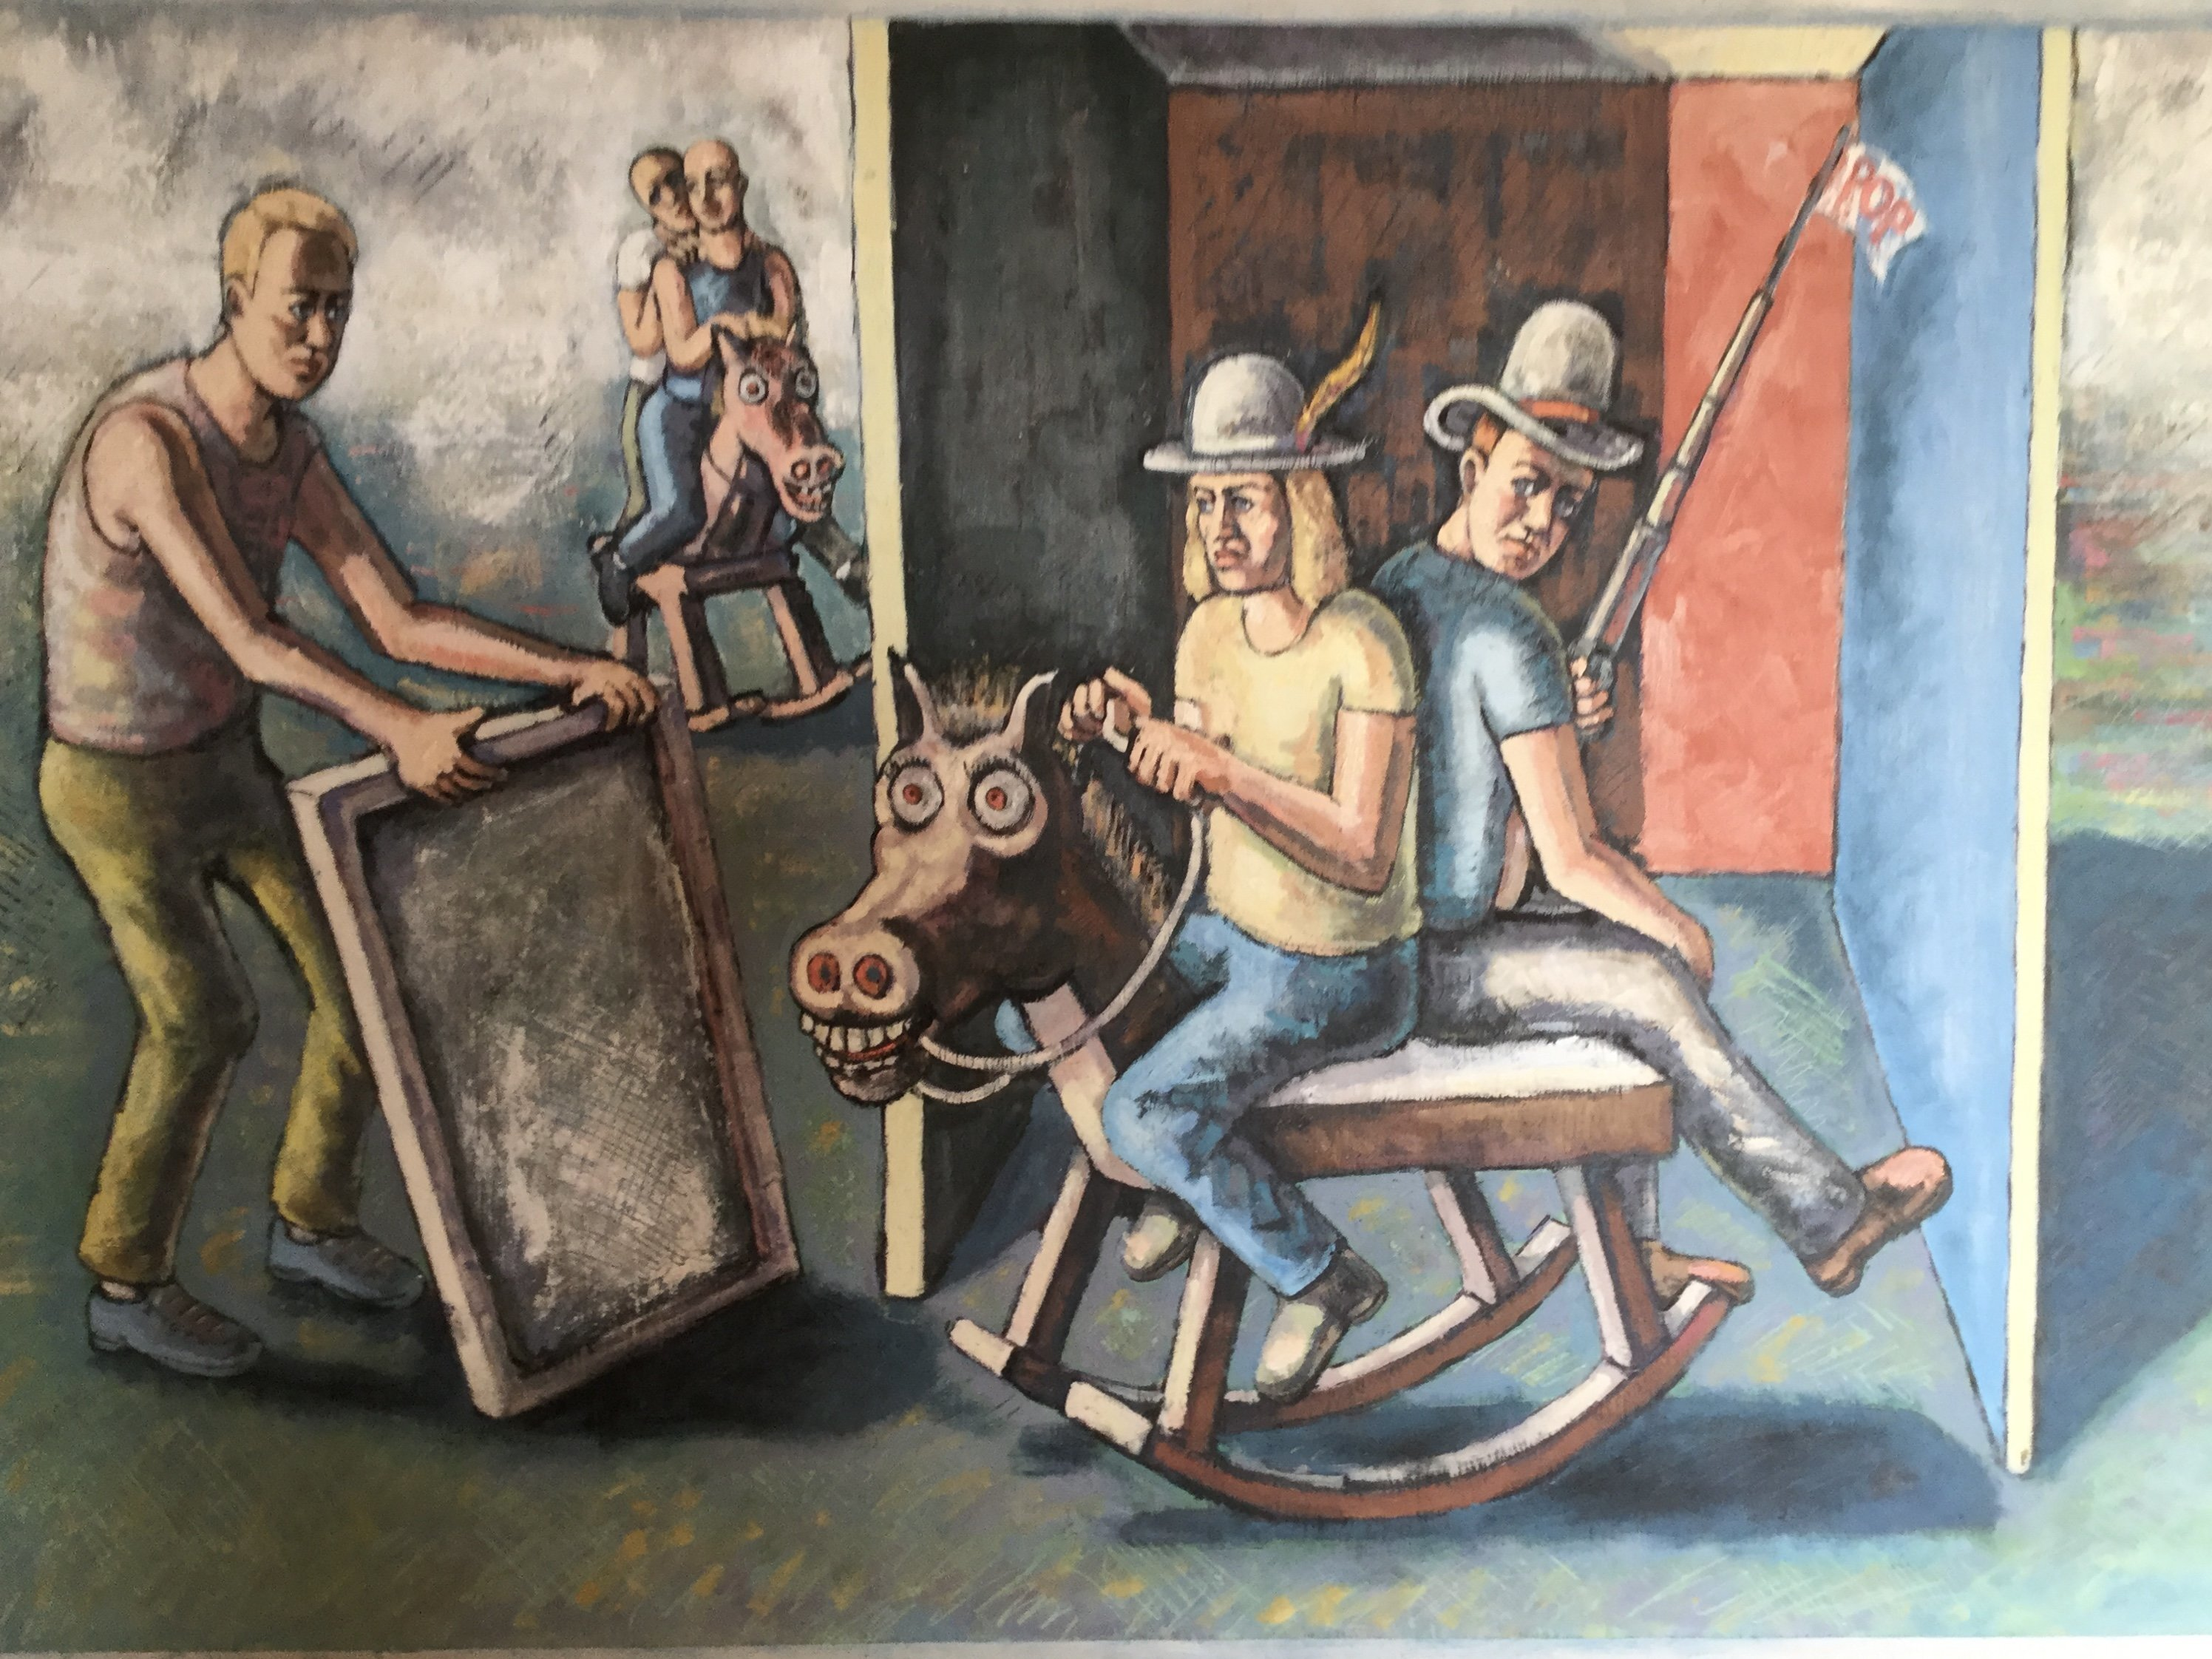 Michael Fornadley: 'Cowboys on crazy horse', 2019 Oil Painting, Political. Literary illusions, 2 cowboys on crazy horse with rocker base, man holding a canvas or mirror, Fog coming in behind 2 distant riders.Compositional walls, leading the eye and confining the center figures. ...